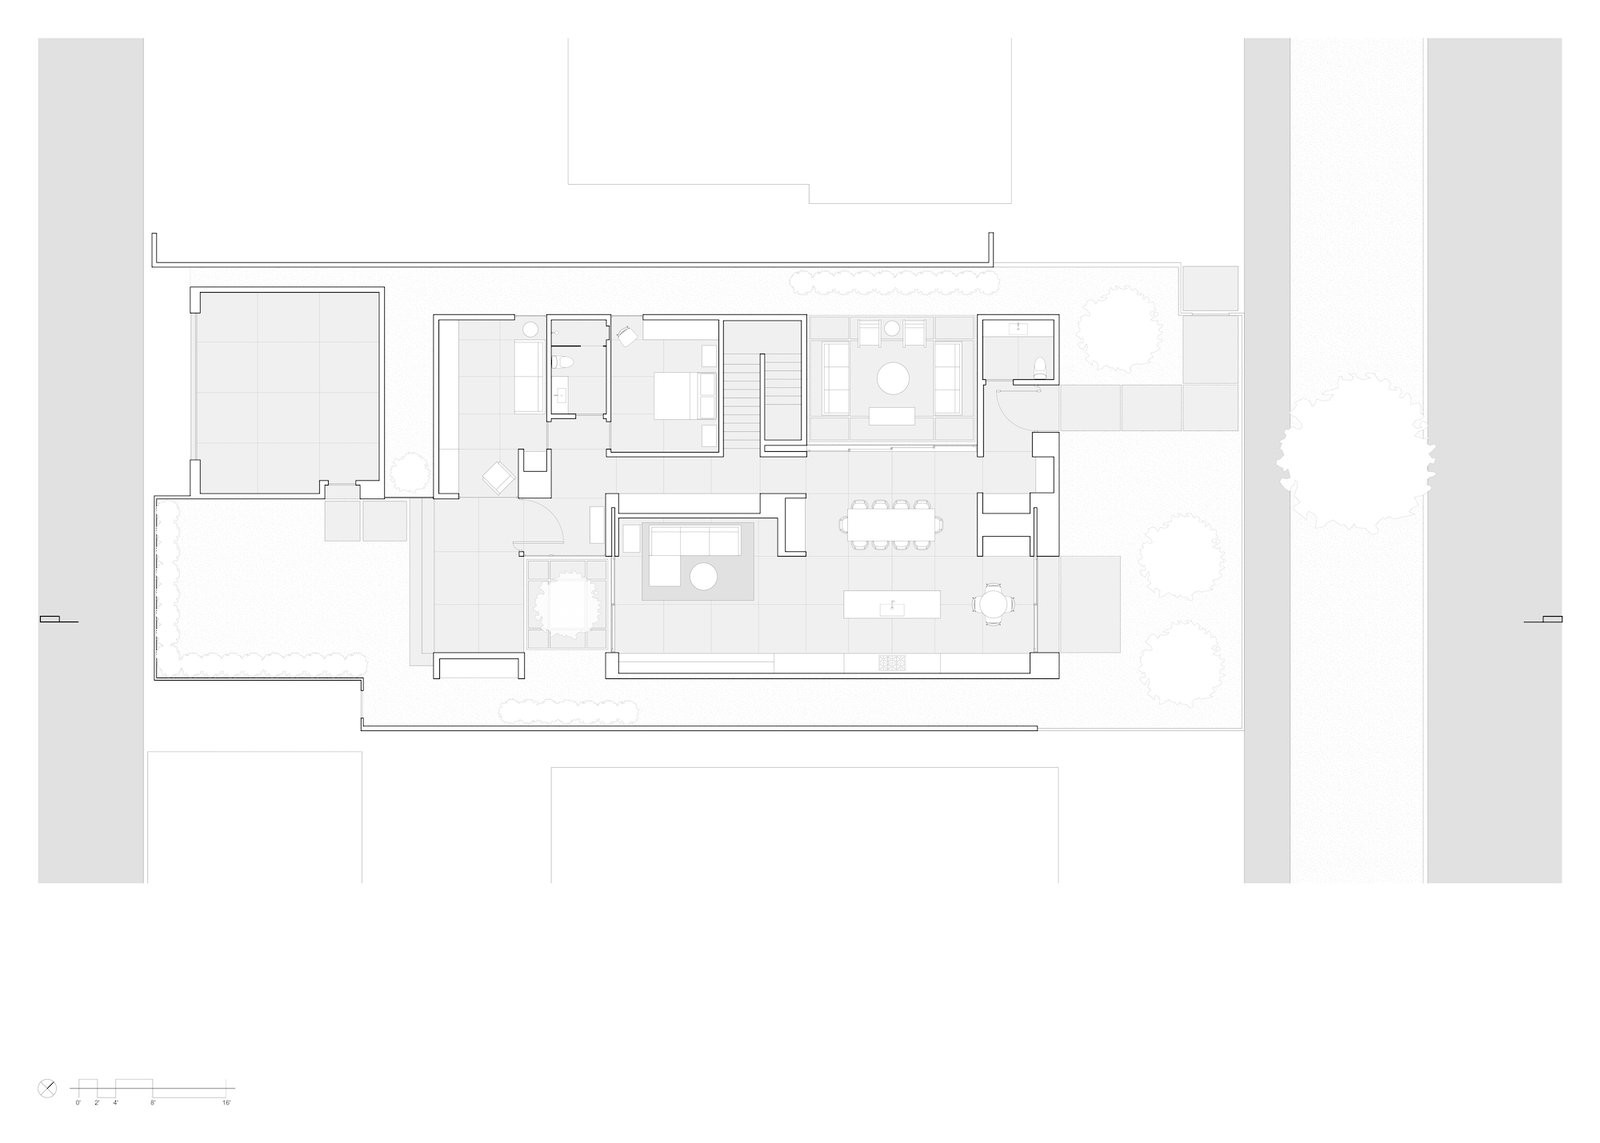 Level-one floor plan of Culver City Case Study House by Woods + Dangaran